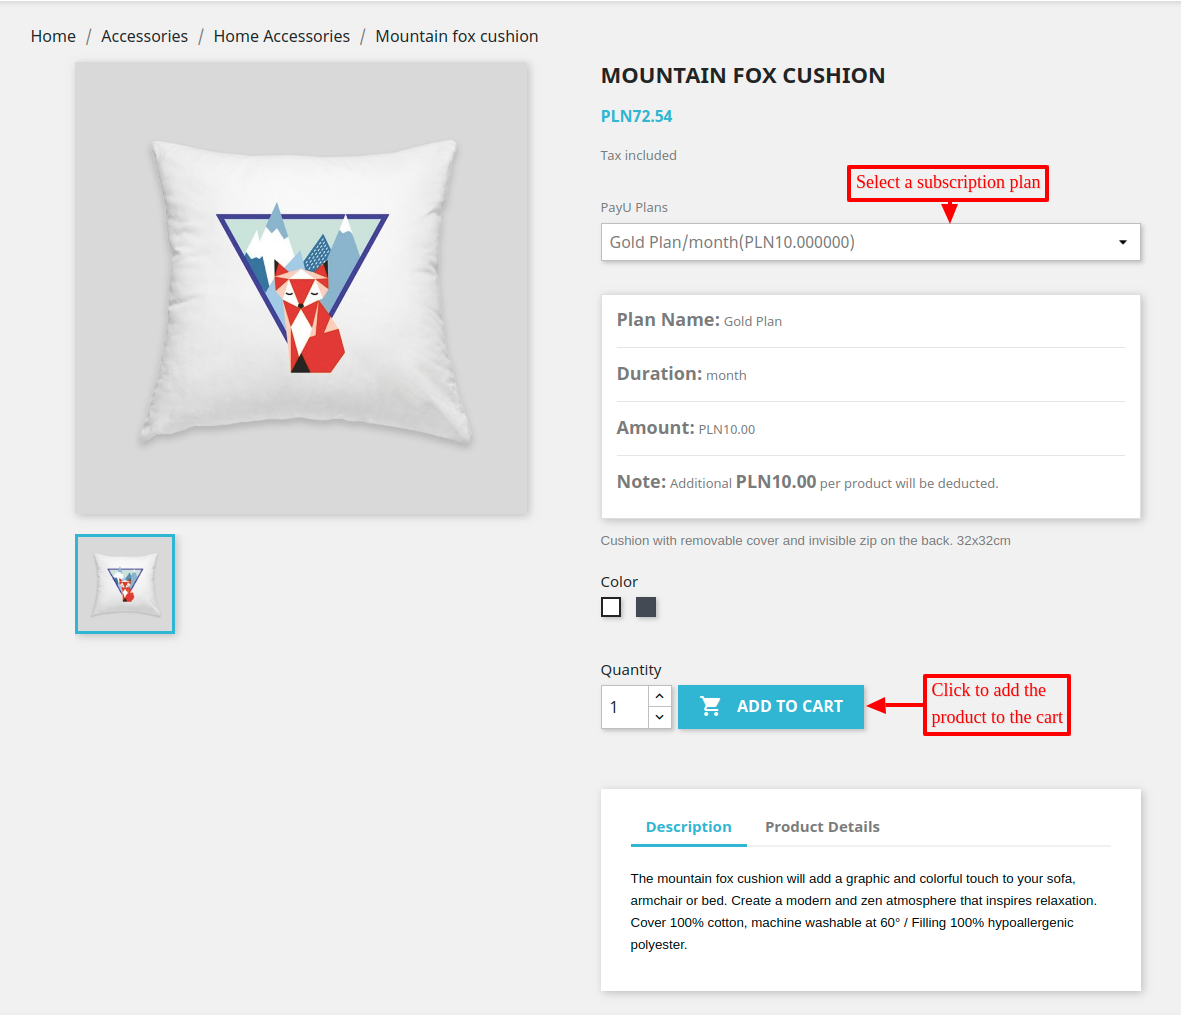 select a subscription plan to subscribe the product